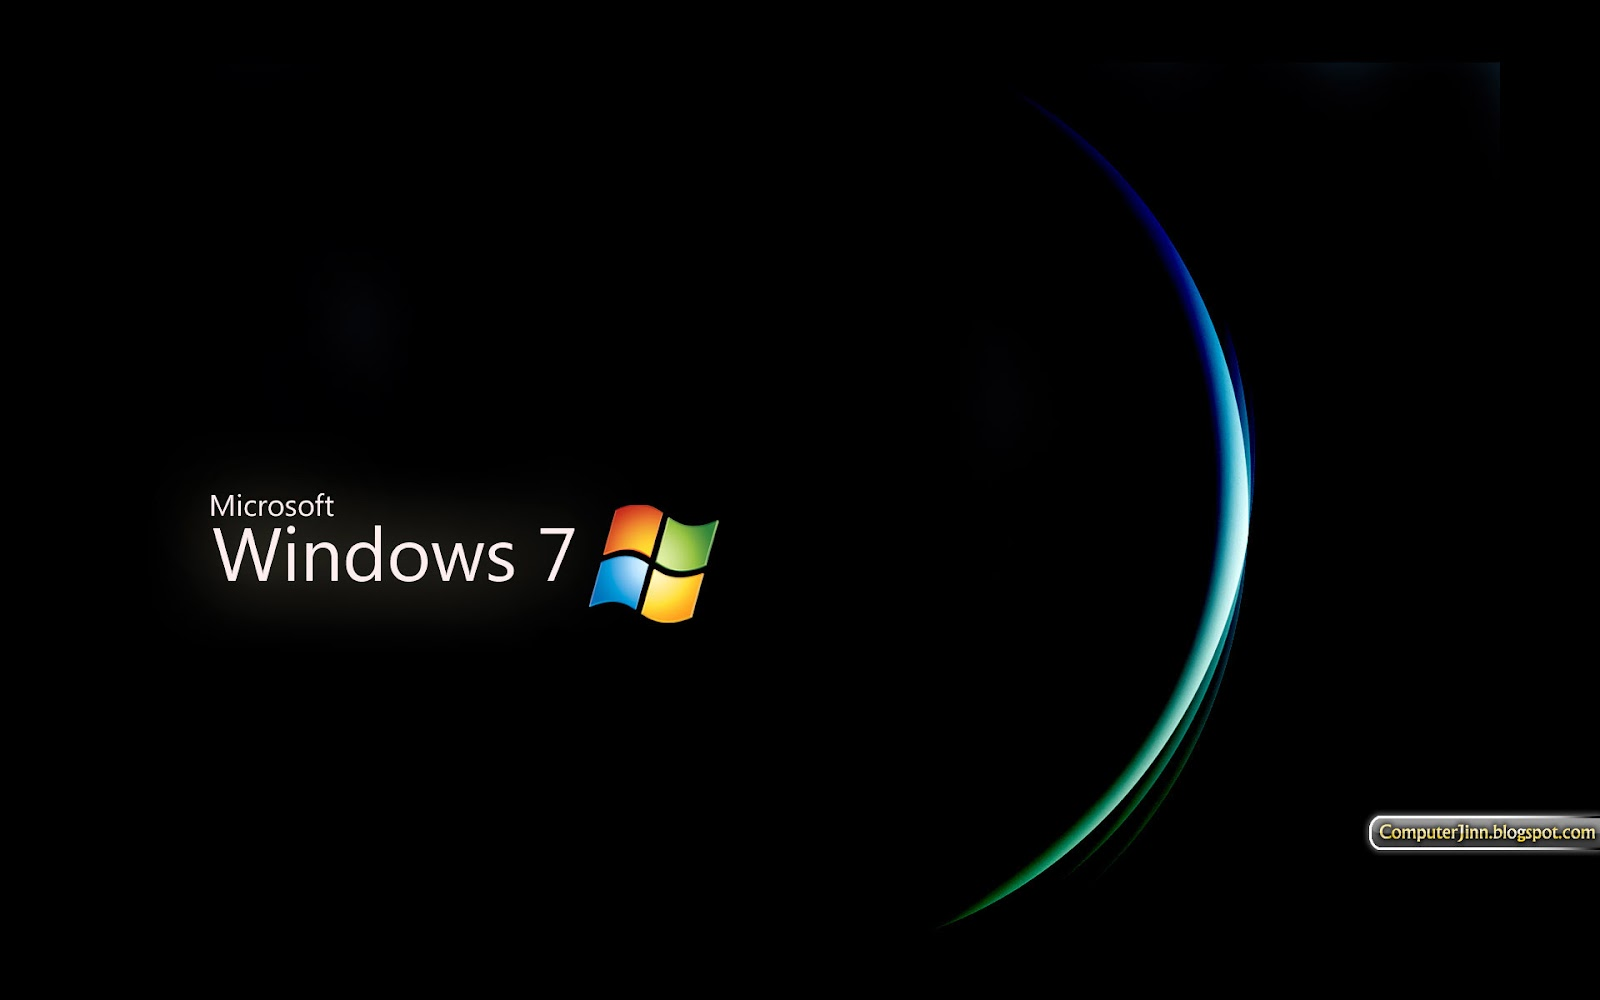 windows 7 black and dark hd wallpapers | wallpapers, pictures, images